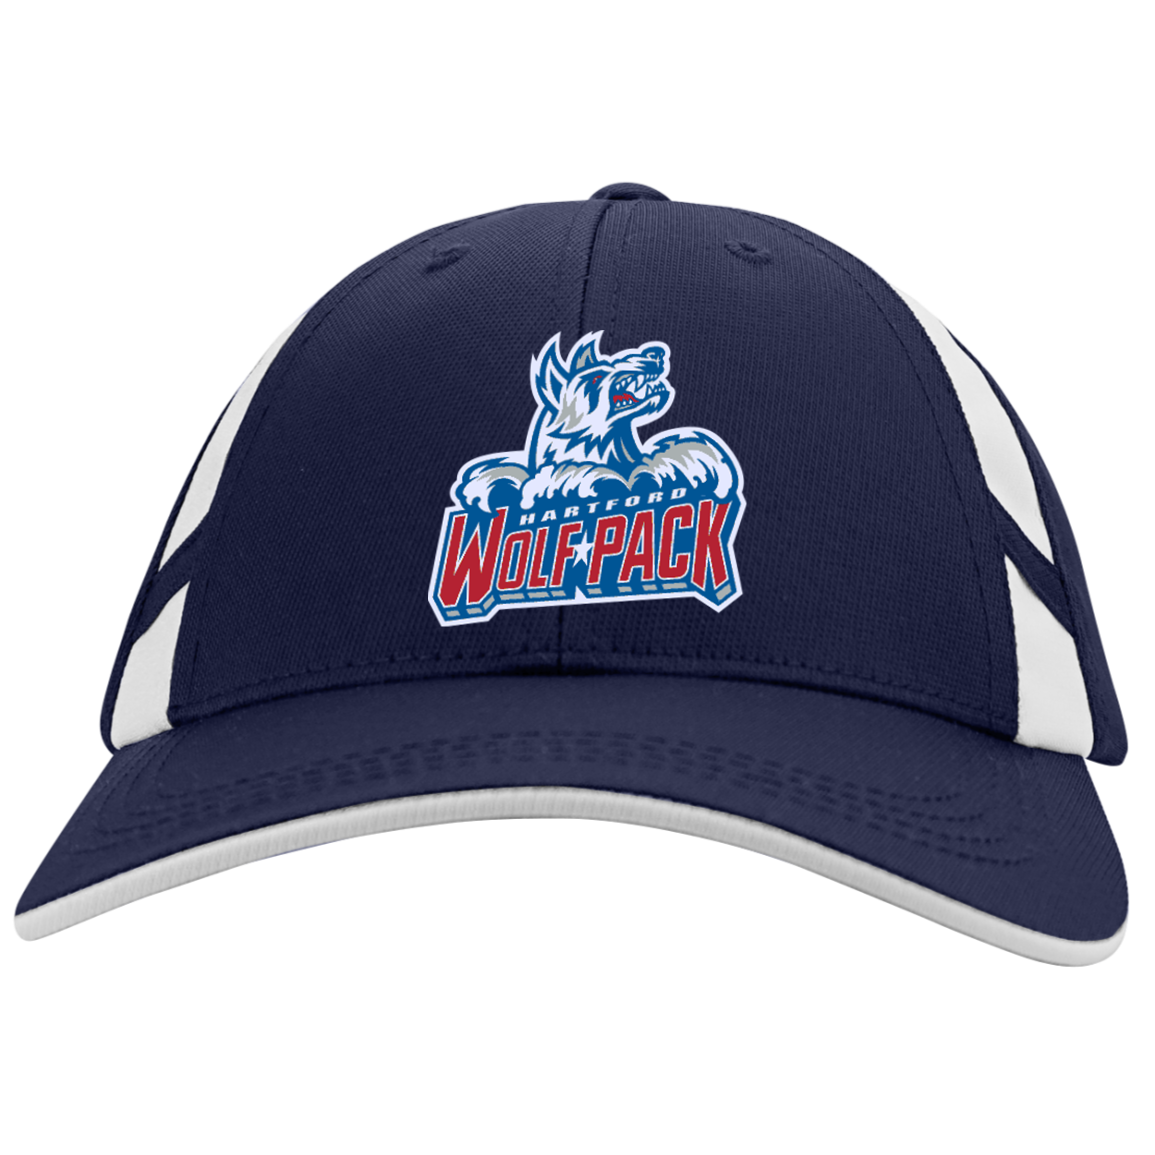 245d36324f3 Hartford Wolf Pack Dry Zone Mesh Inset Cap – ahlstore.com